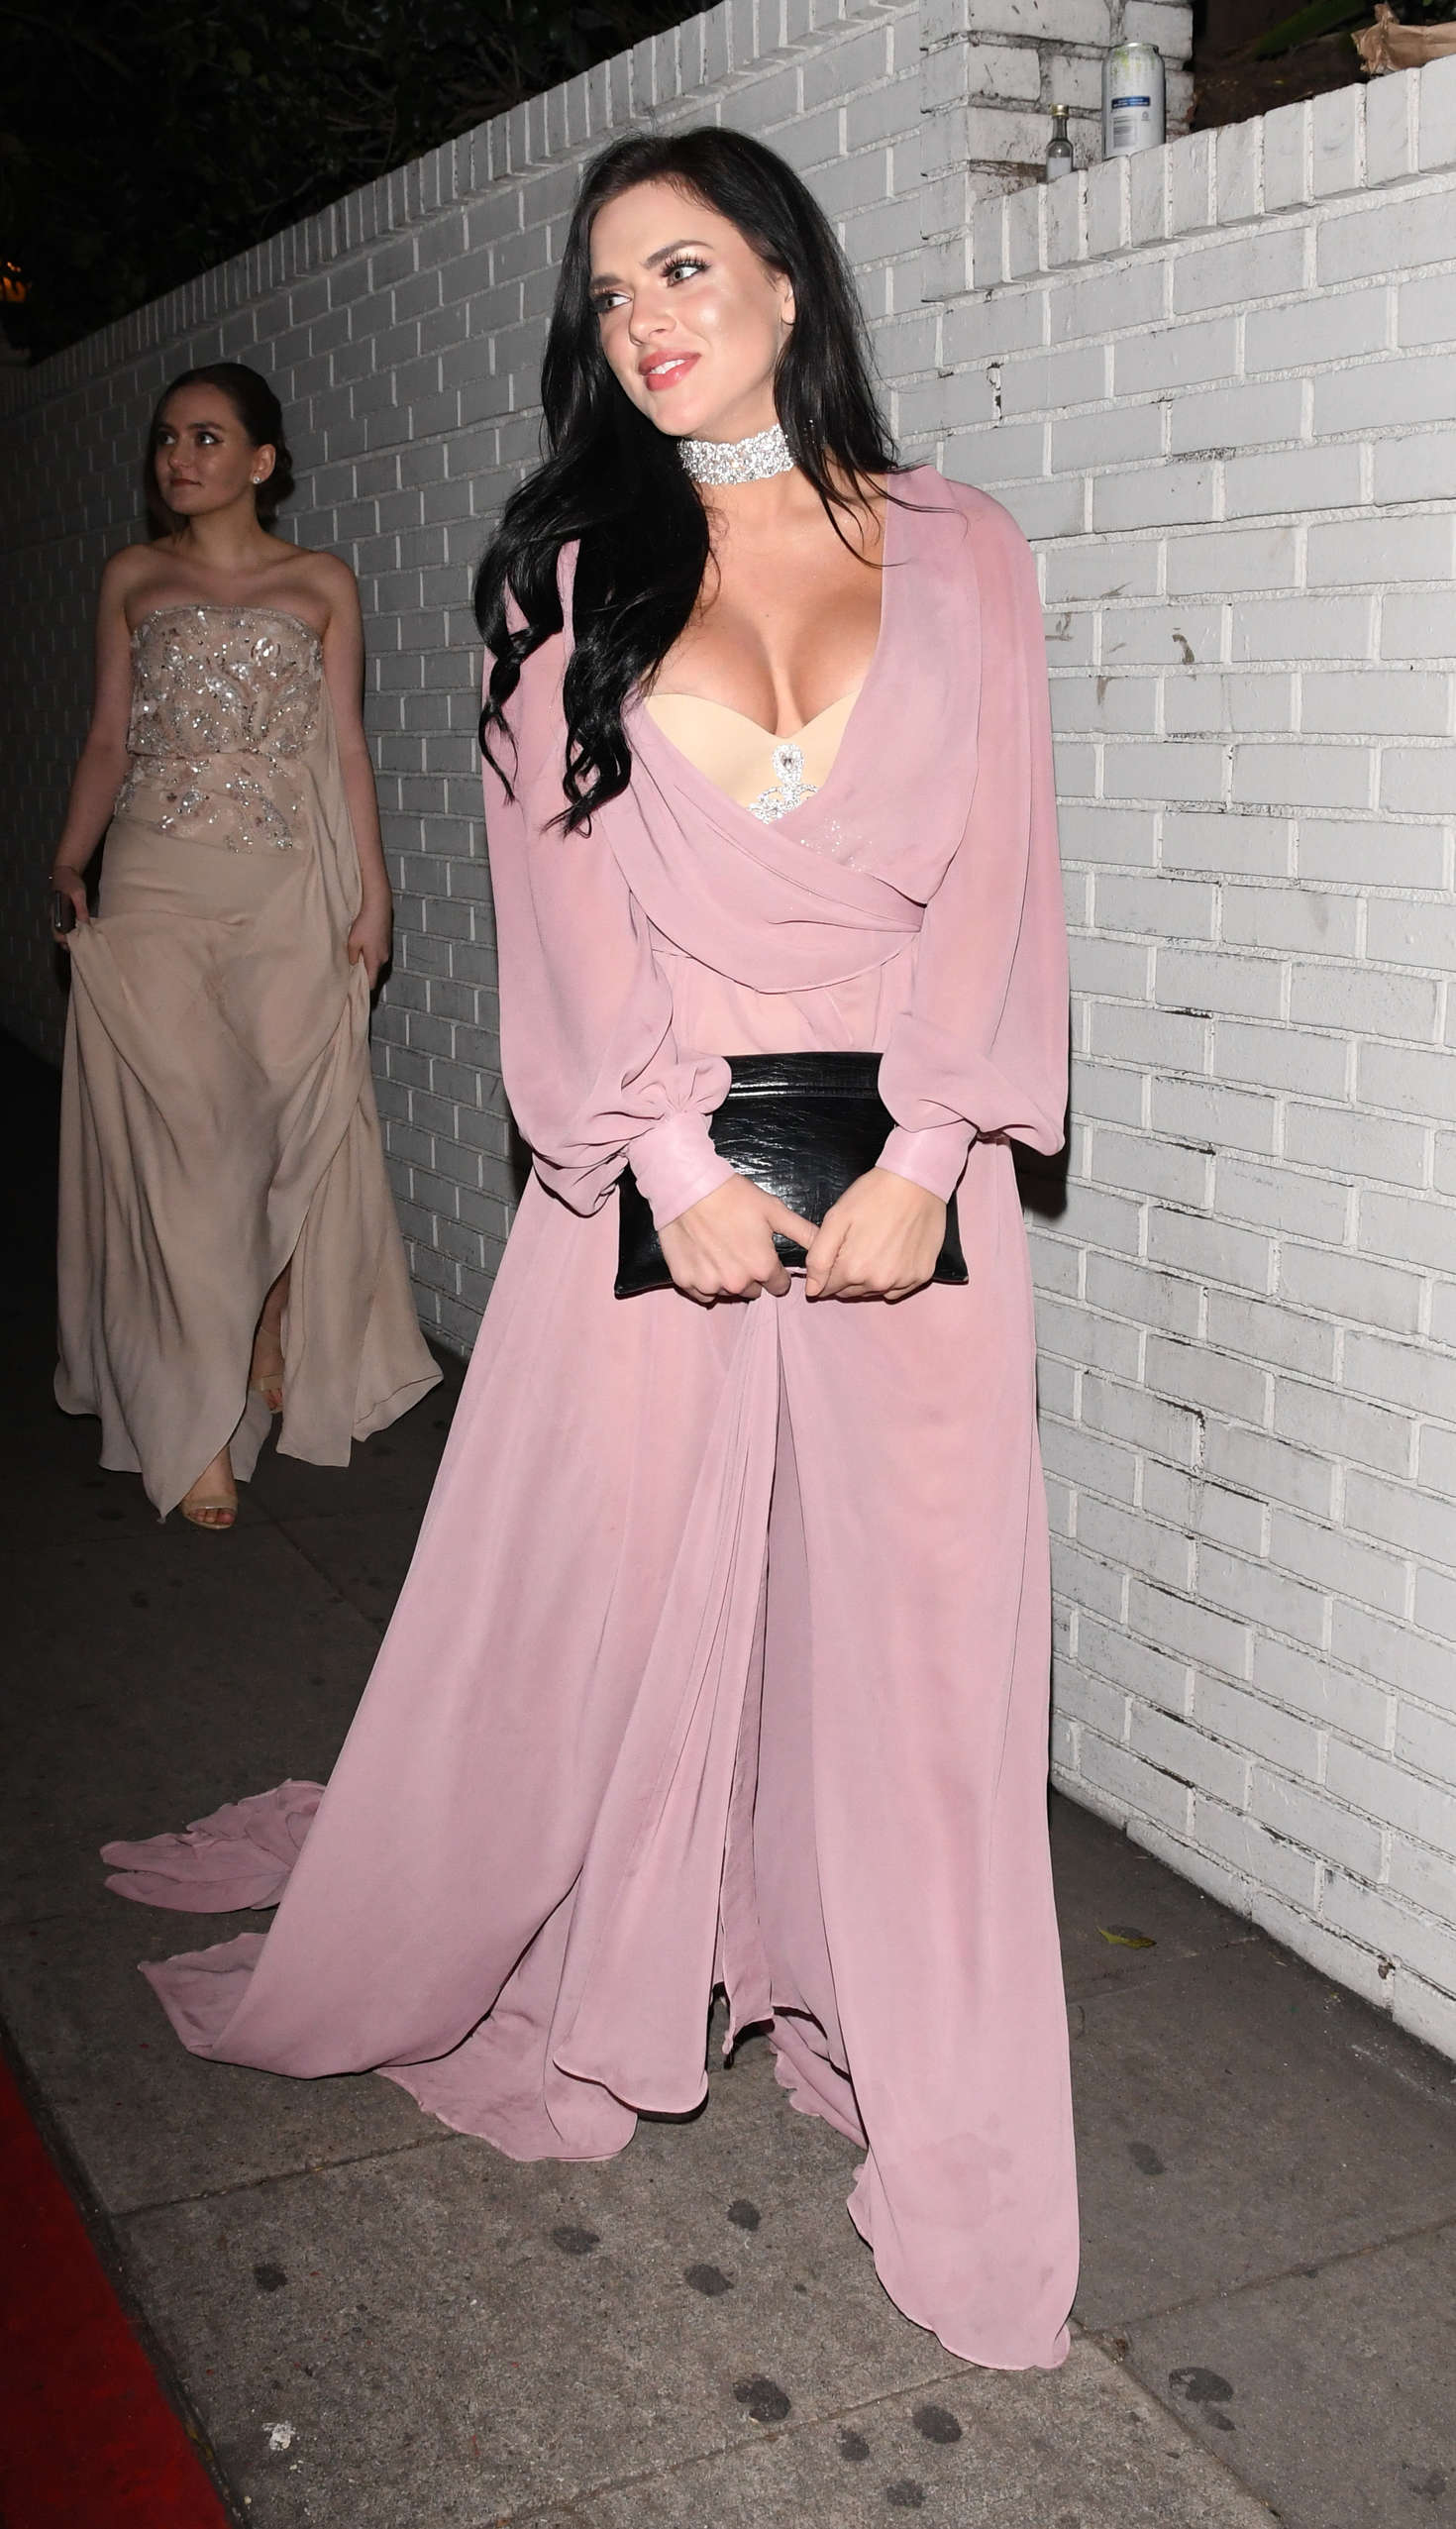 Abigail Ratchford At Chateau Marmont Hotel In West